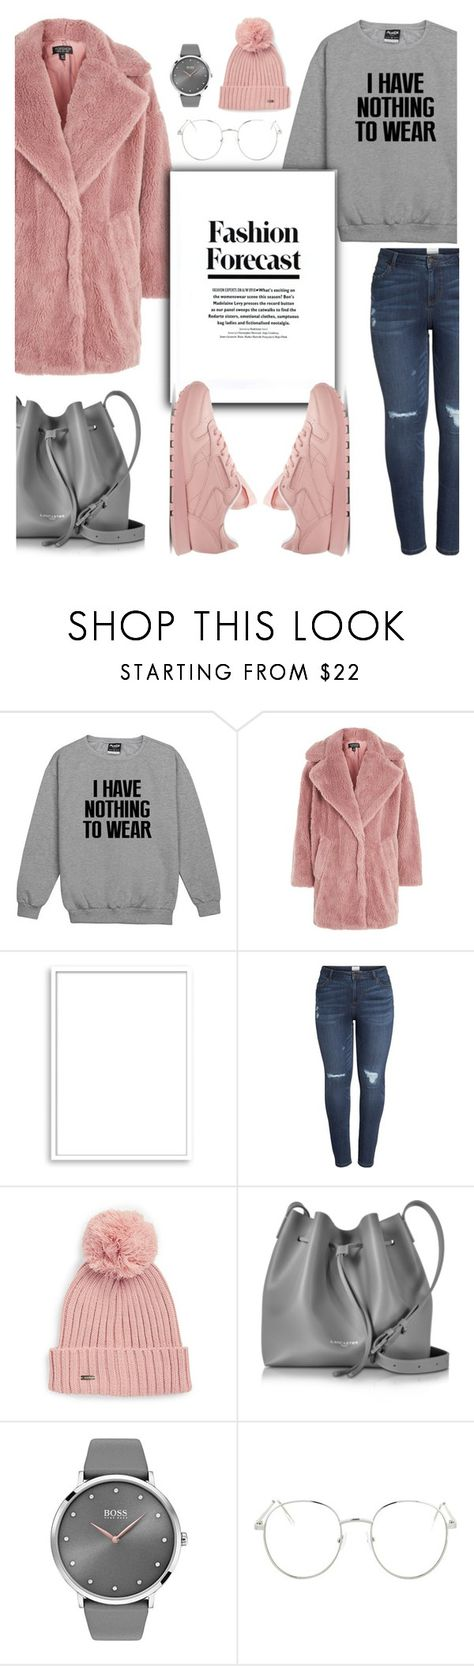 """Get The Look: Pink & Gray"" by glamorous09 ❤ liked on Polyvore featuring Topshop, Bomedo, Caslon, Calvin Klein, Lancaster, BOSS Black, Reebok, pinkandgray and plus size clothing"